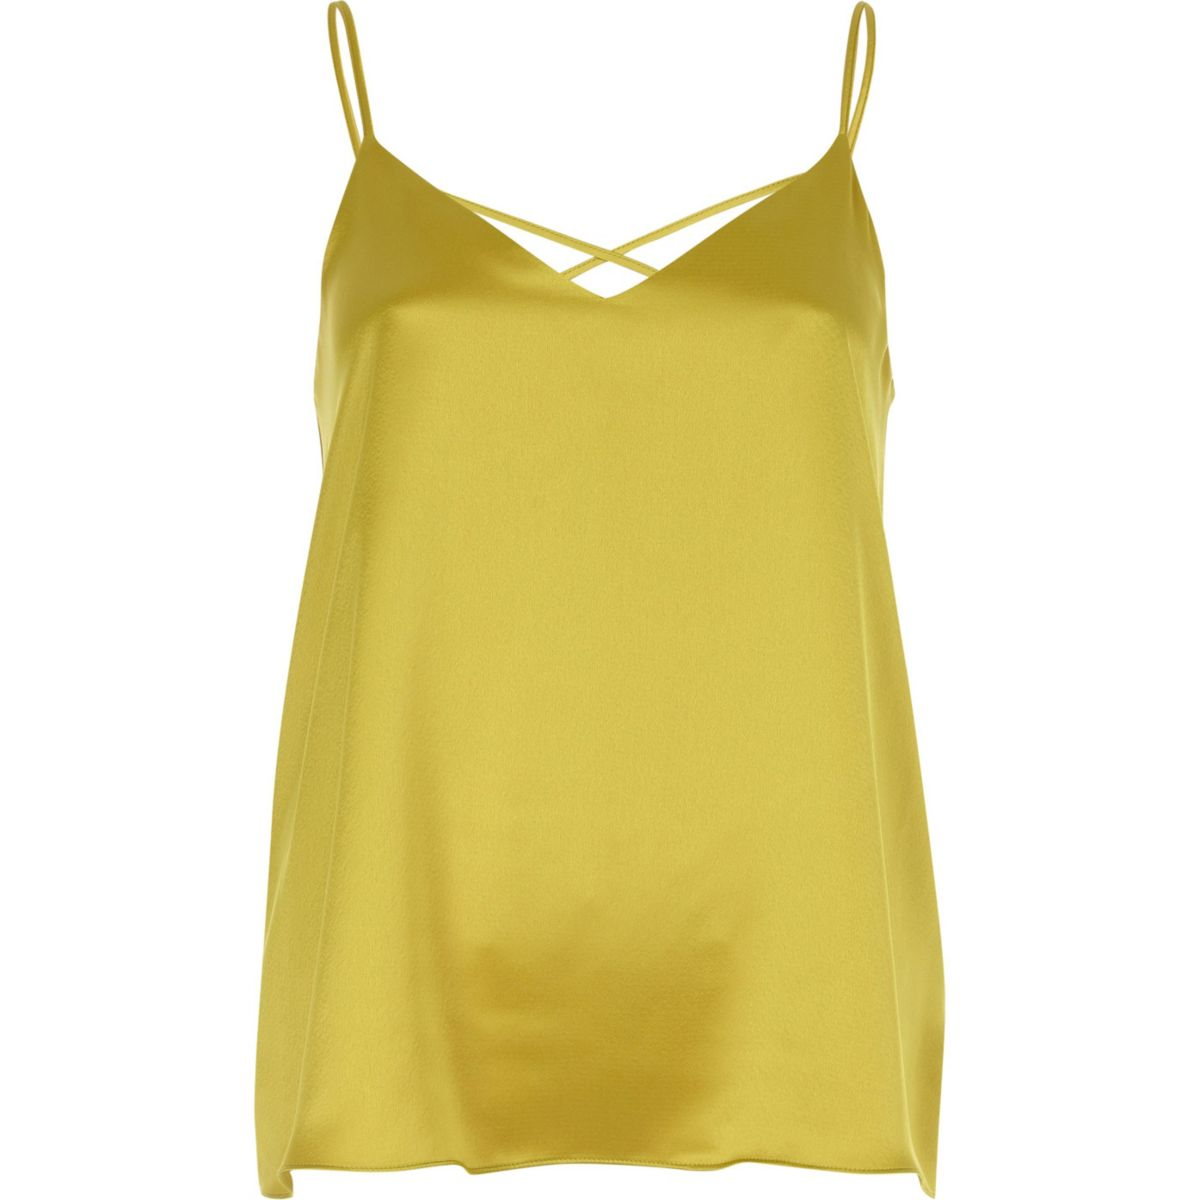 Yellow back cami top strap cross ORXqnRF